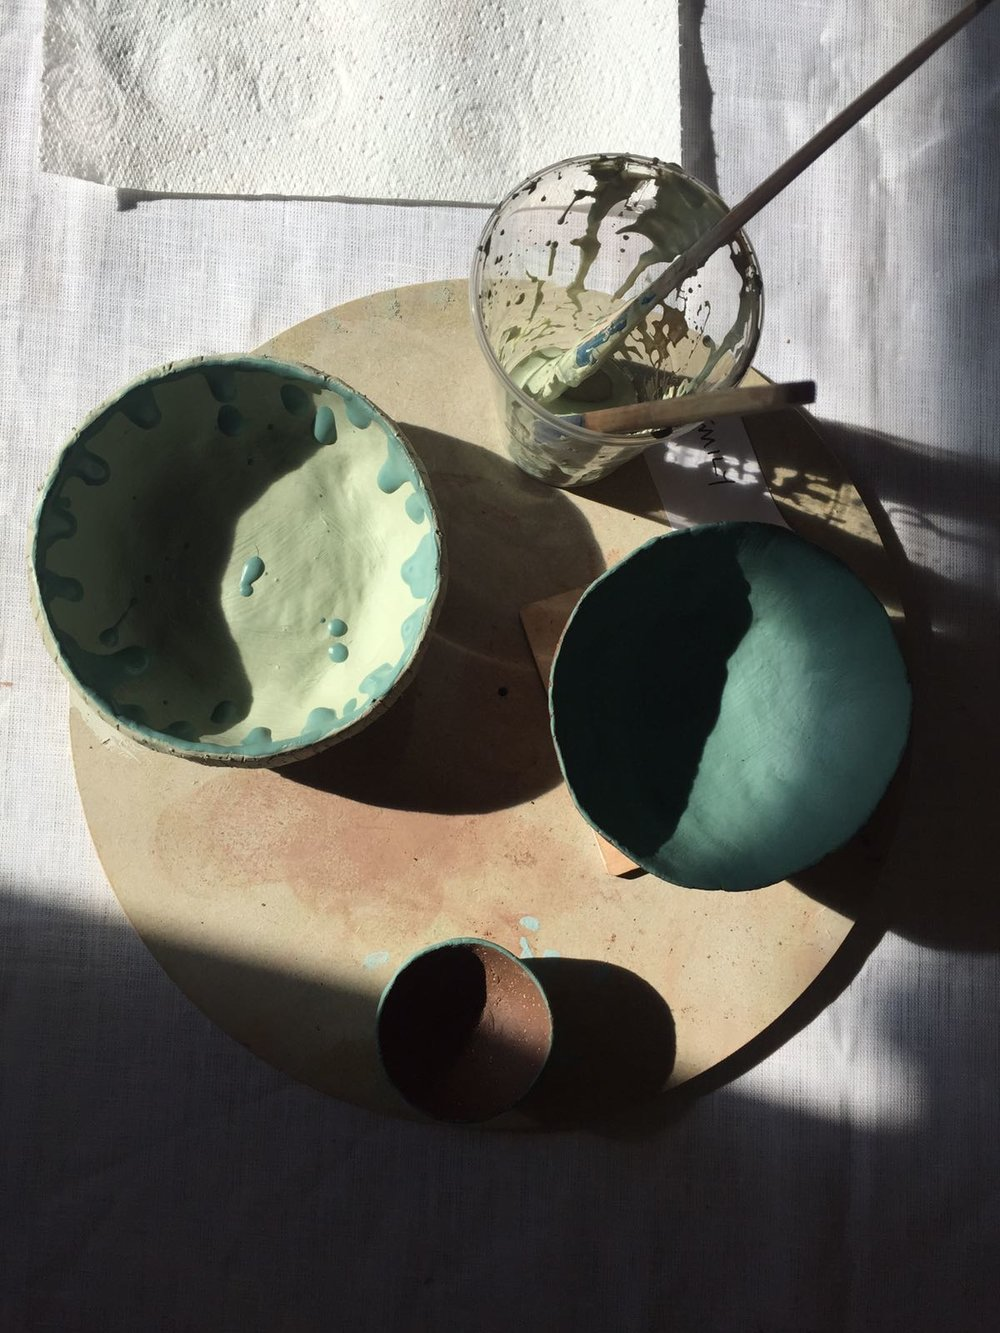 Create a hand-raised pinch pot